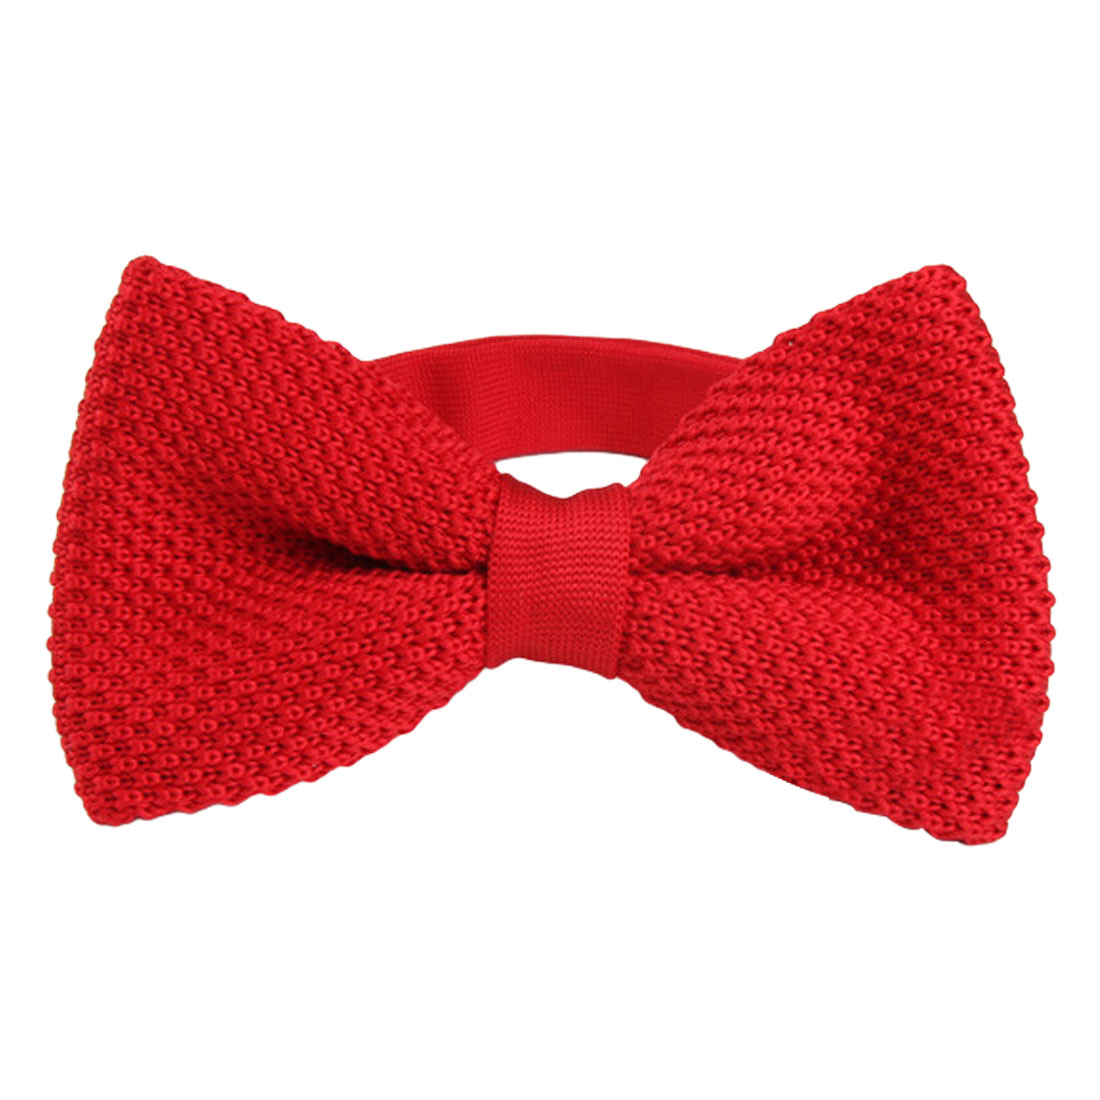 Charming Men's Double-Deck Knitted Bow Tie Male Wedding Bowties Many Styles Pattern Butterfly Ties For Men Butterfly Winter Tie